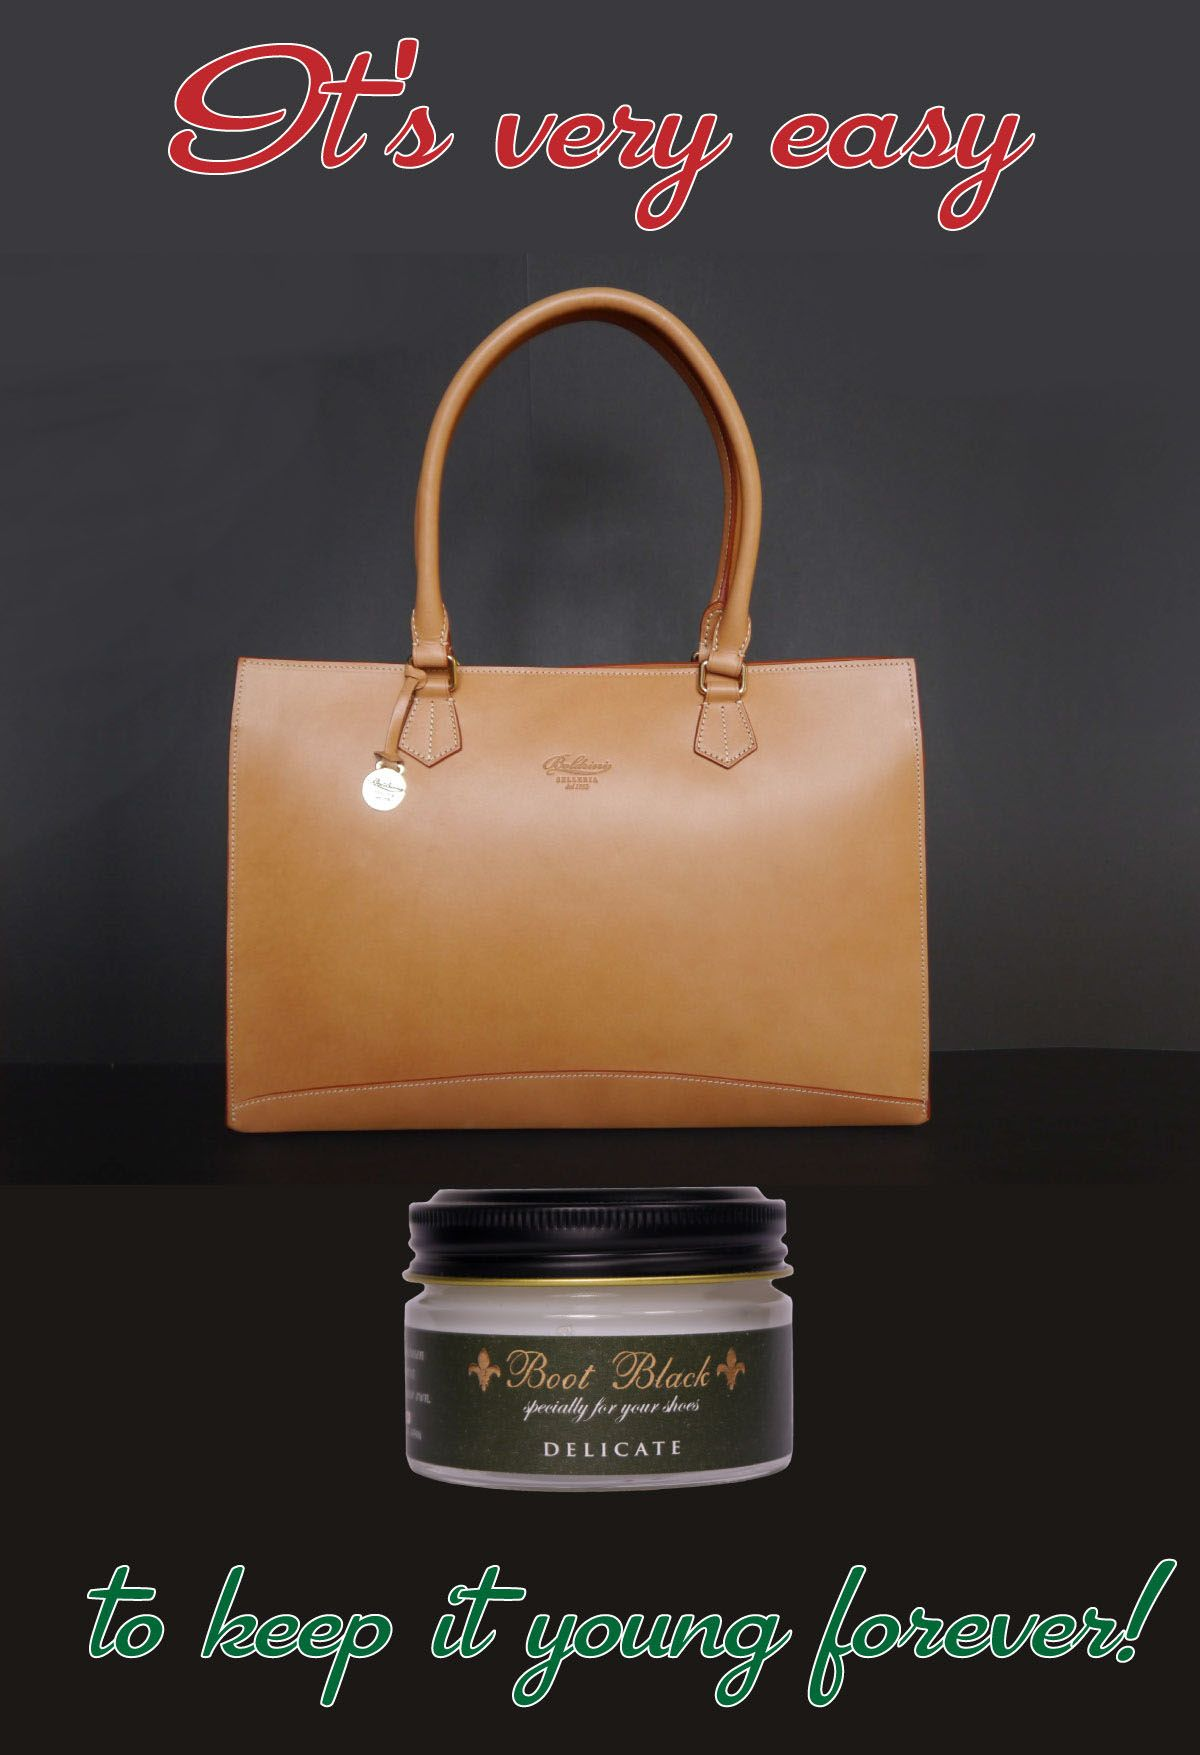 Boot Black Delicate Cream The Best Leather Care For All Bags Belts Purses